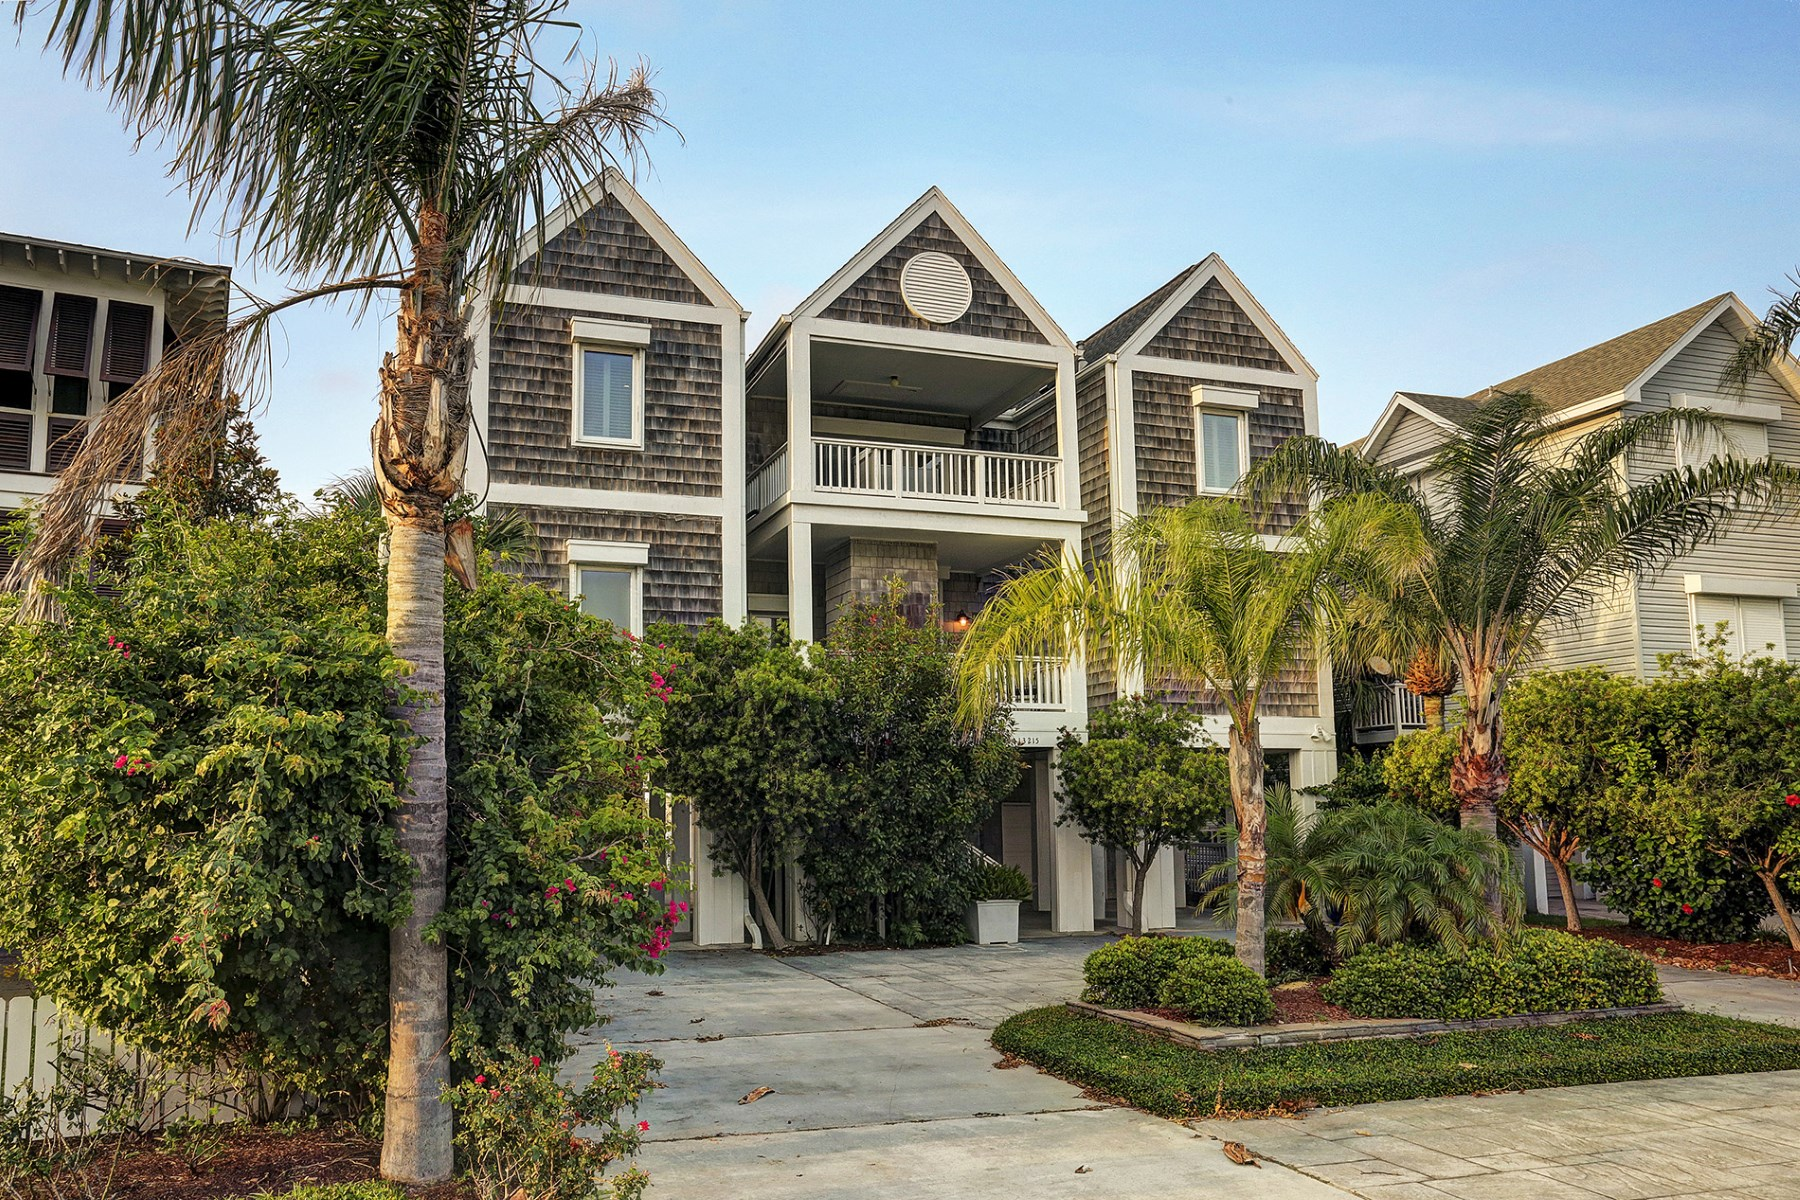 Maison unifamiliale pour l Vente à 13215 Binnacle Way Galveston, Texas, 77554 États-Unis